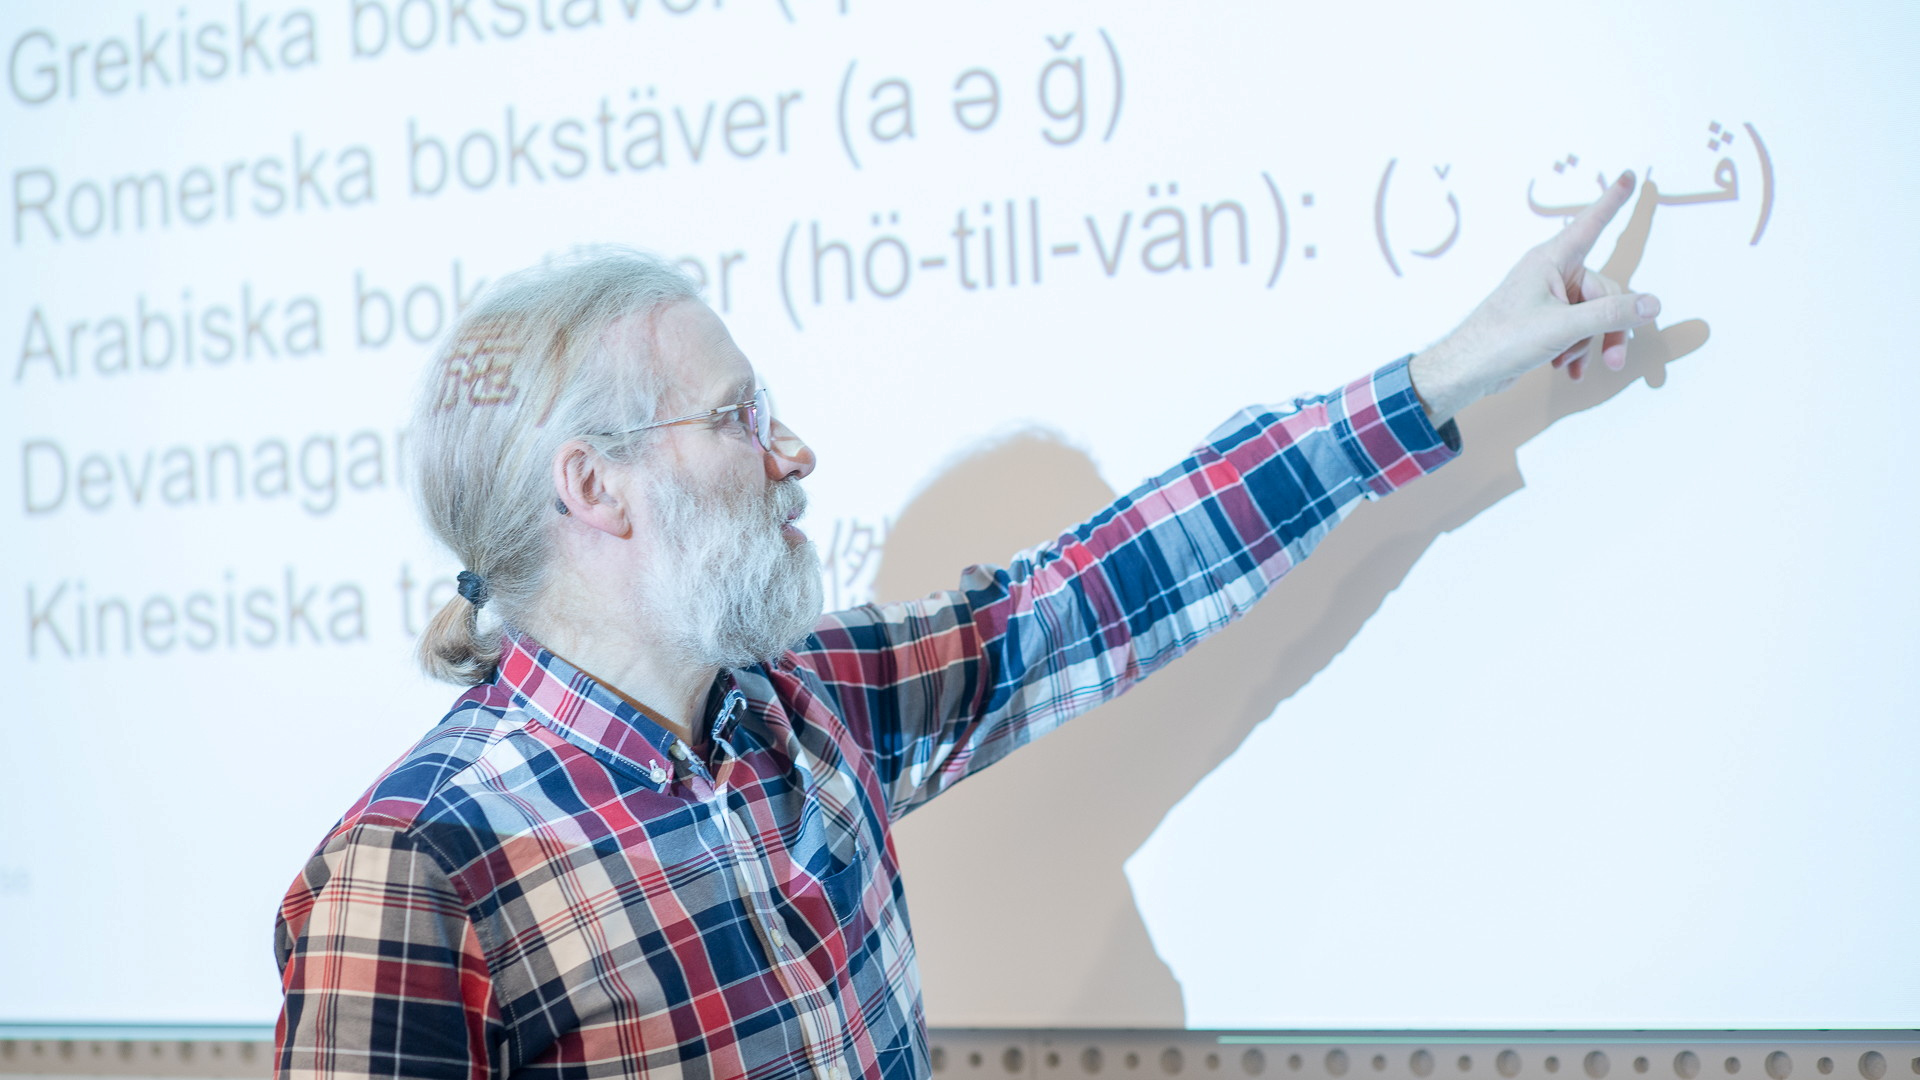 Mats Dufberg, during the presentation on the DNS class at KTH.